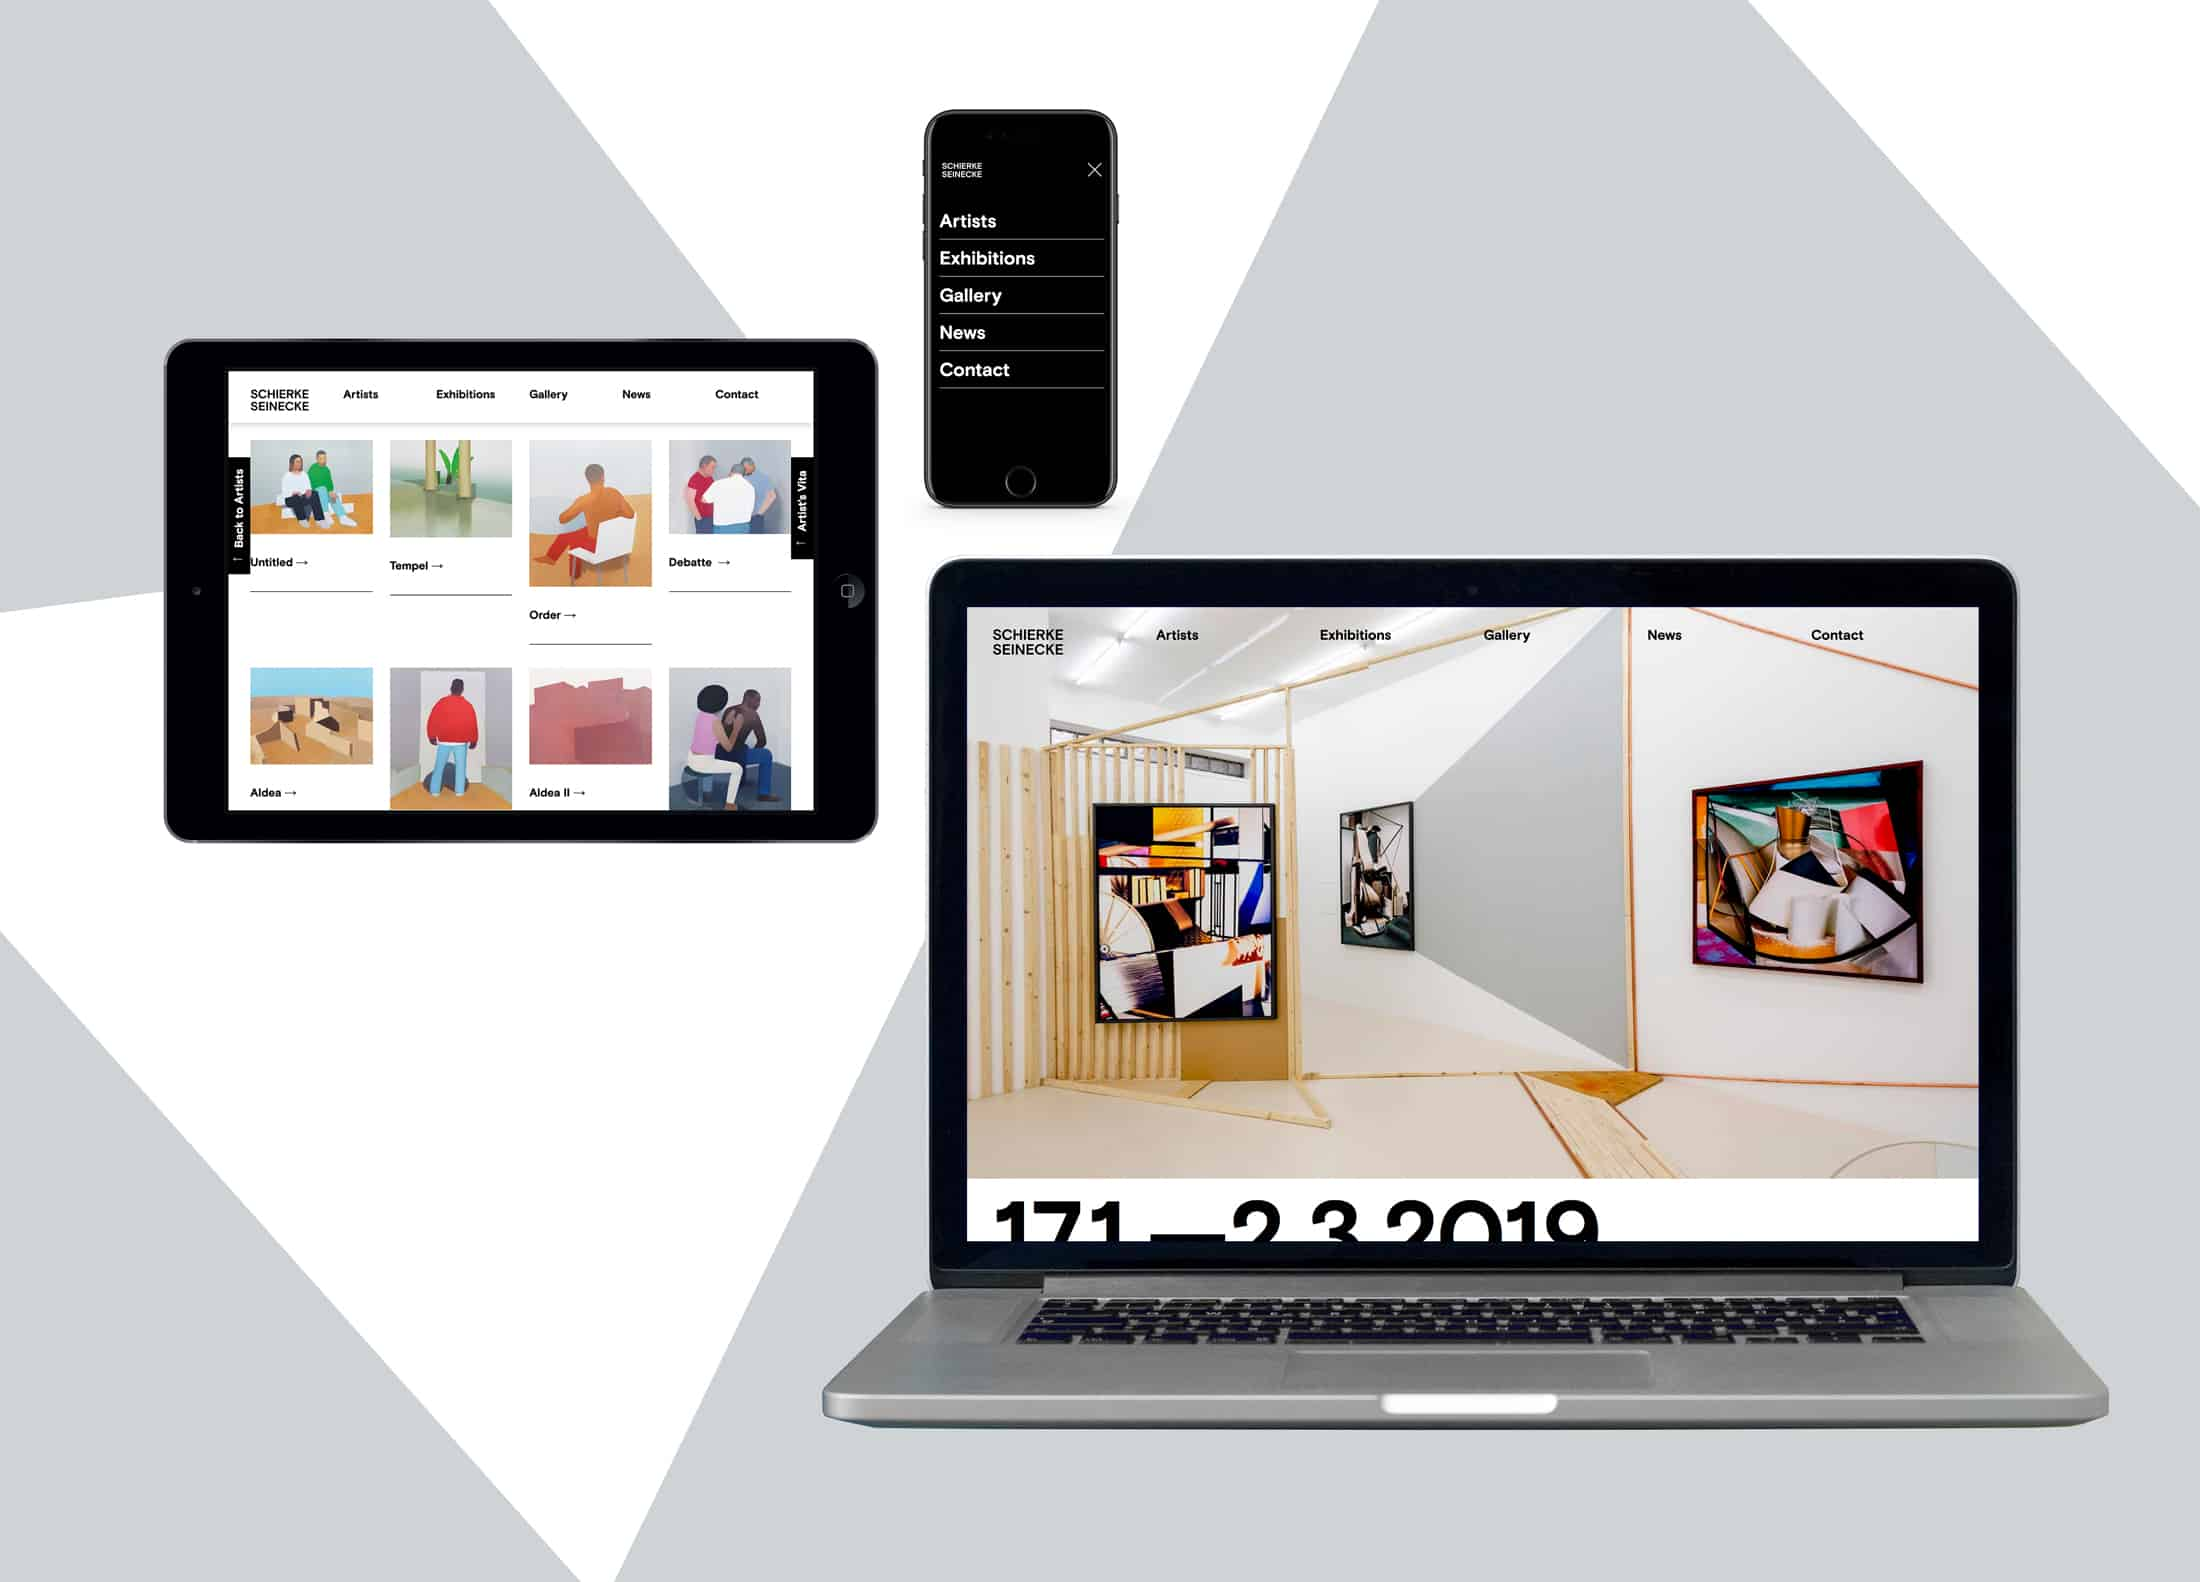 Photo of the responsive website design for Gallery Schierke Seinecke on a mobile, tablet and desktop screen.